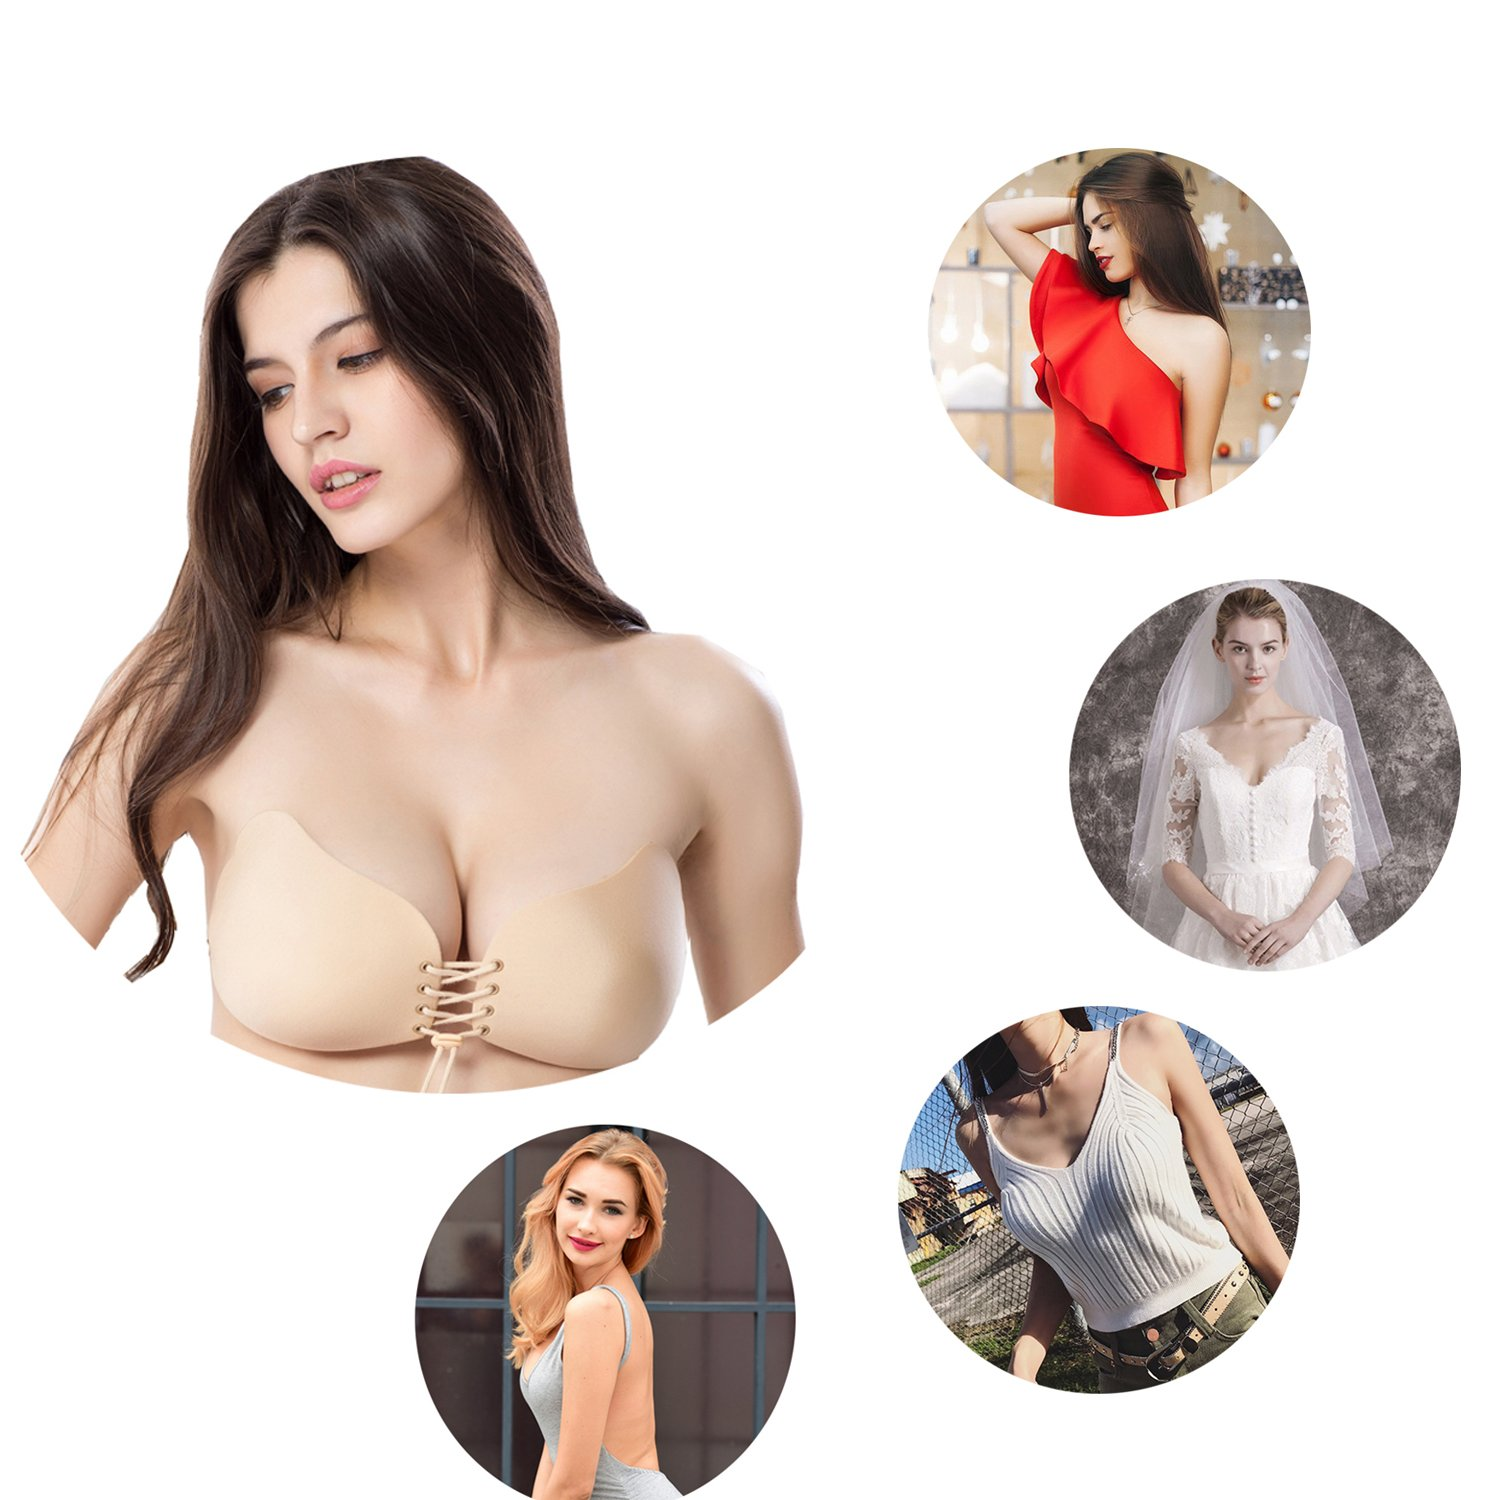 208d14a95b SNUG STAR Wings-shaped Strapless Self Adhesive Silicone Invisible Push-up  Backless Bras